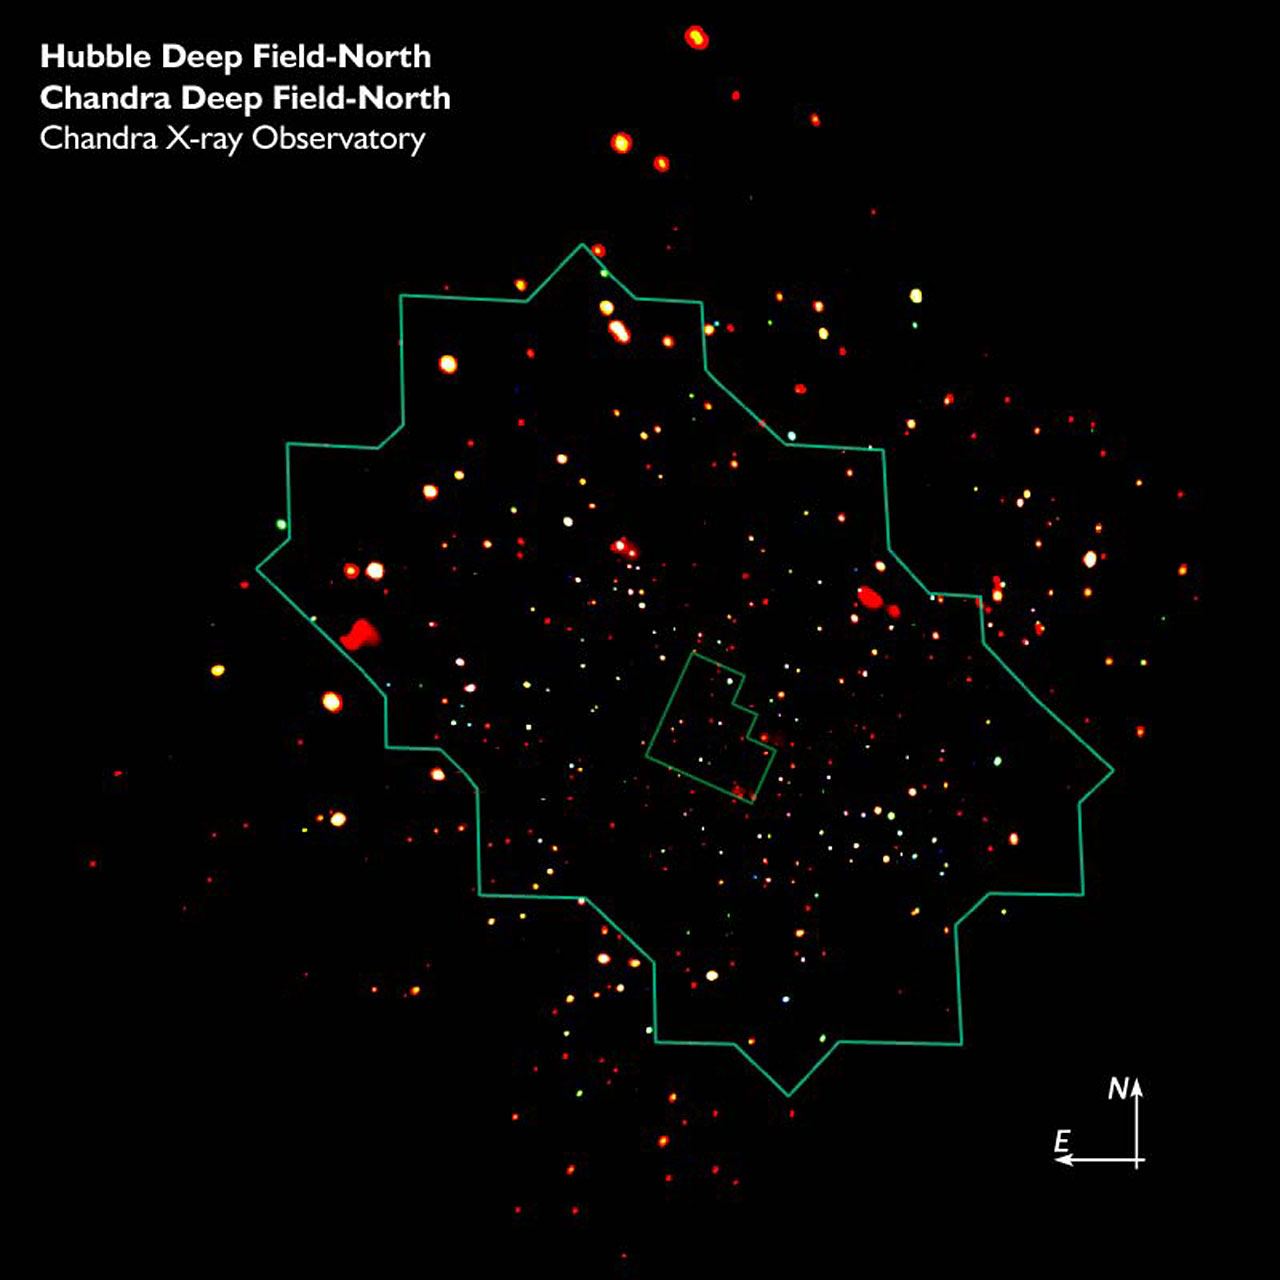 CDF-N CXO Image with Location of ACS Mosaic and WFPC2 HDF-N